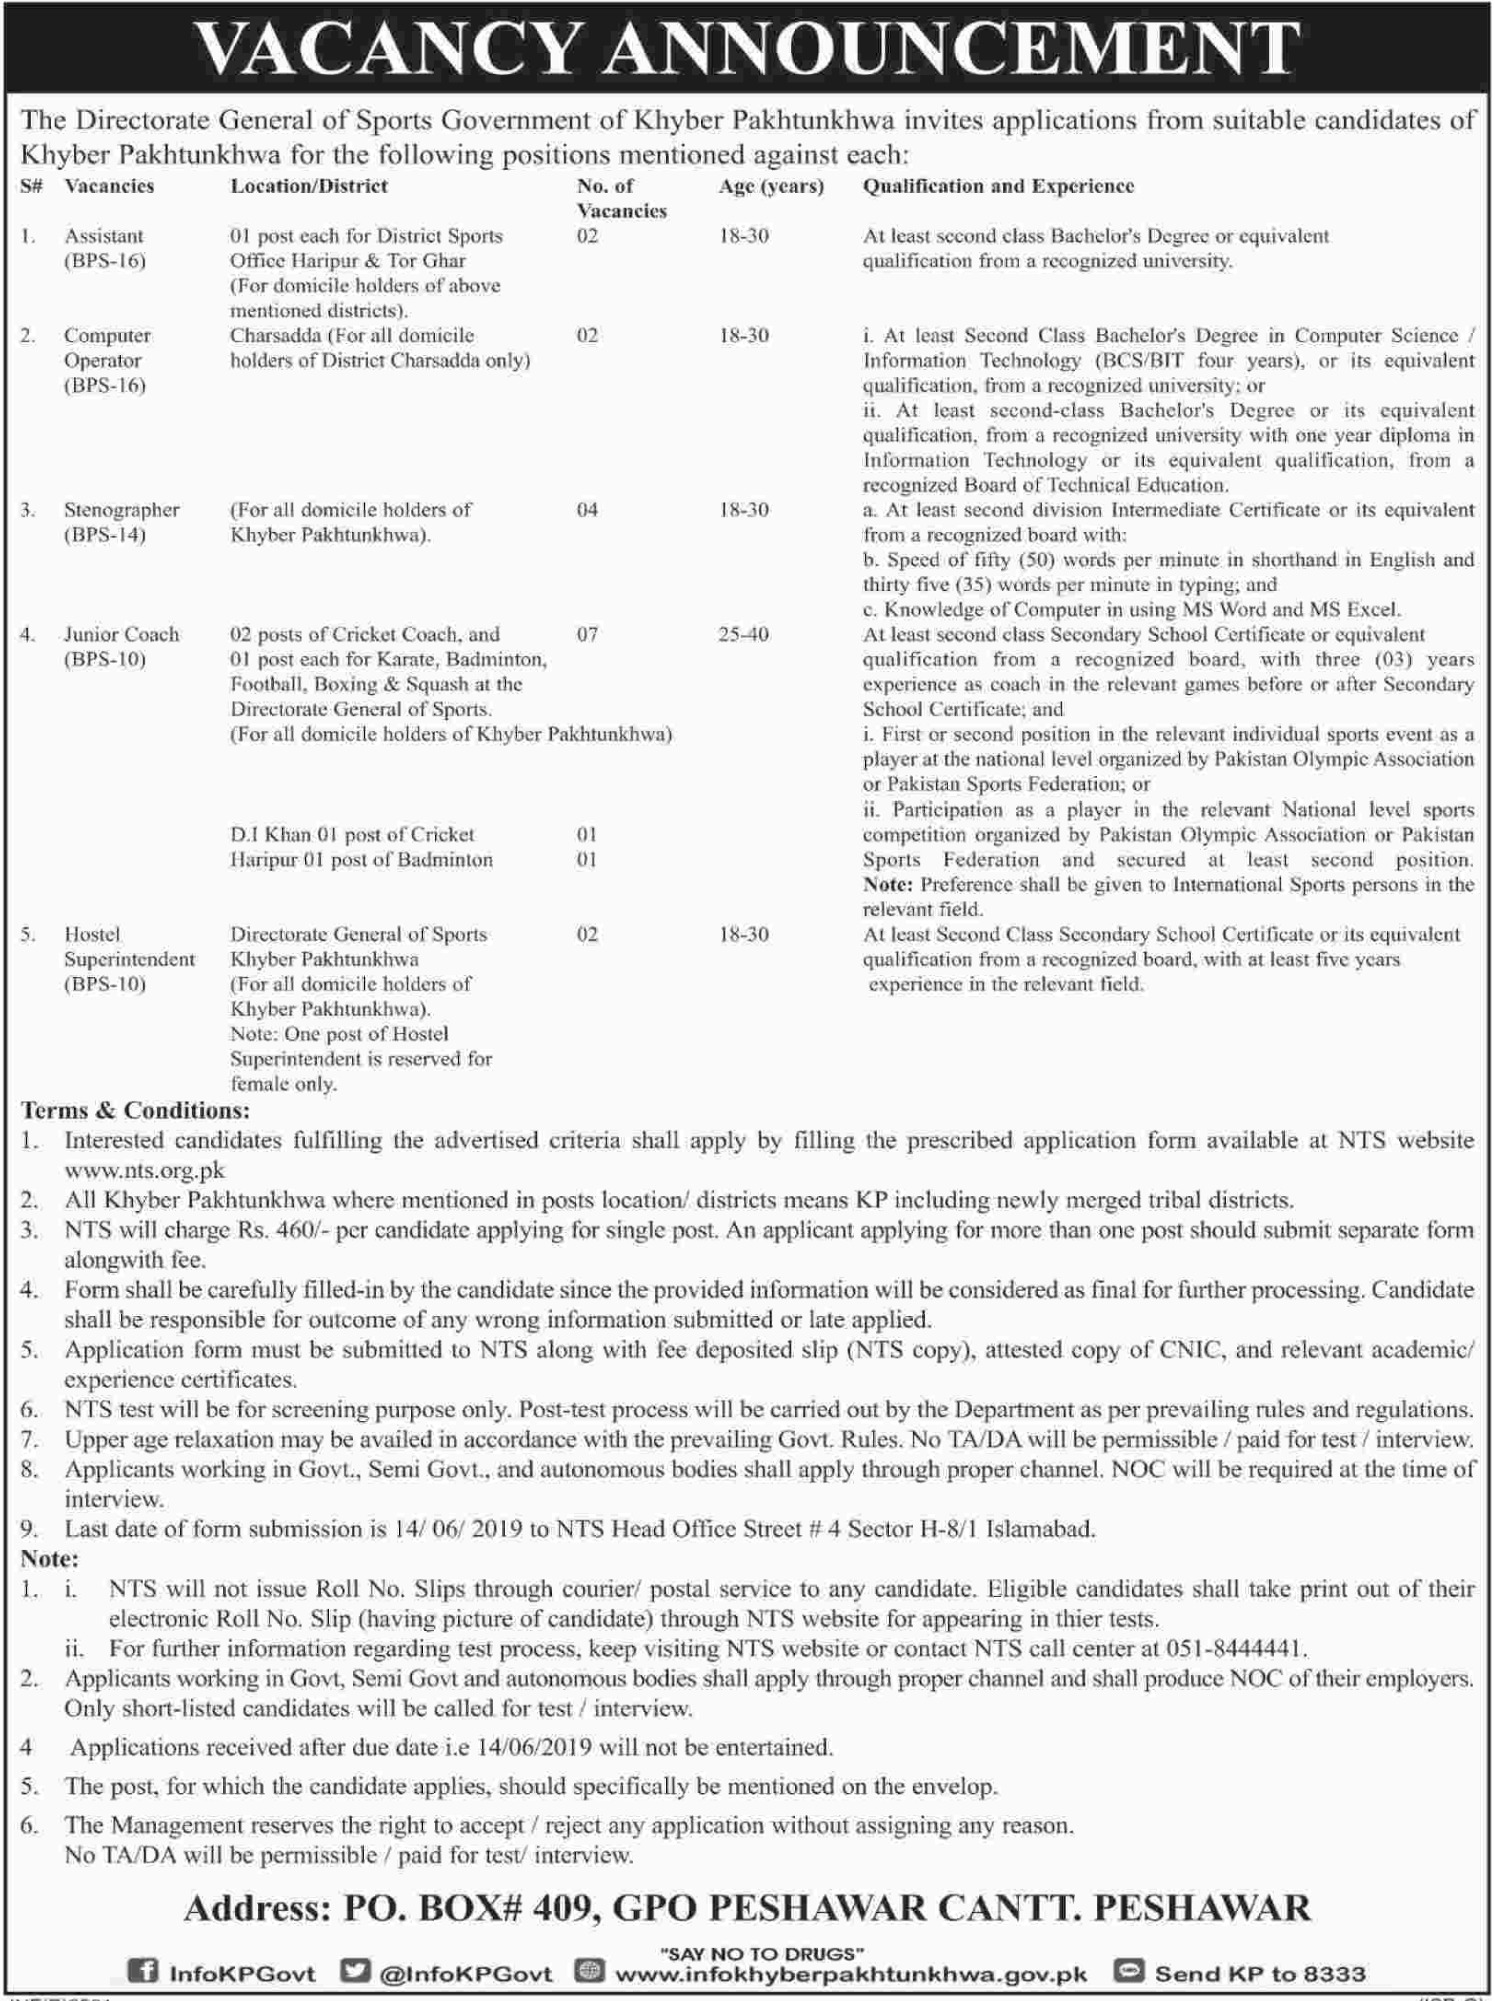 Directorate General of Sports Government of Khyber Pakhtunkhwa Jobs 2019 through NTS